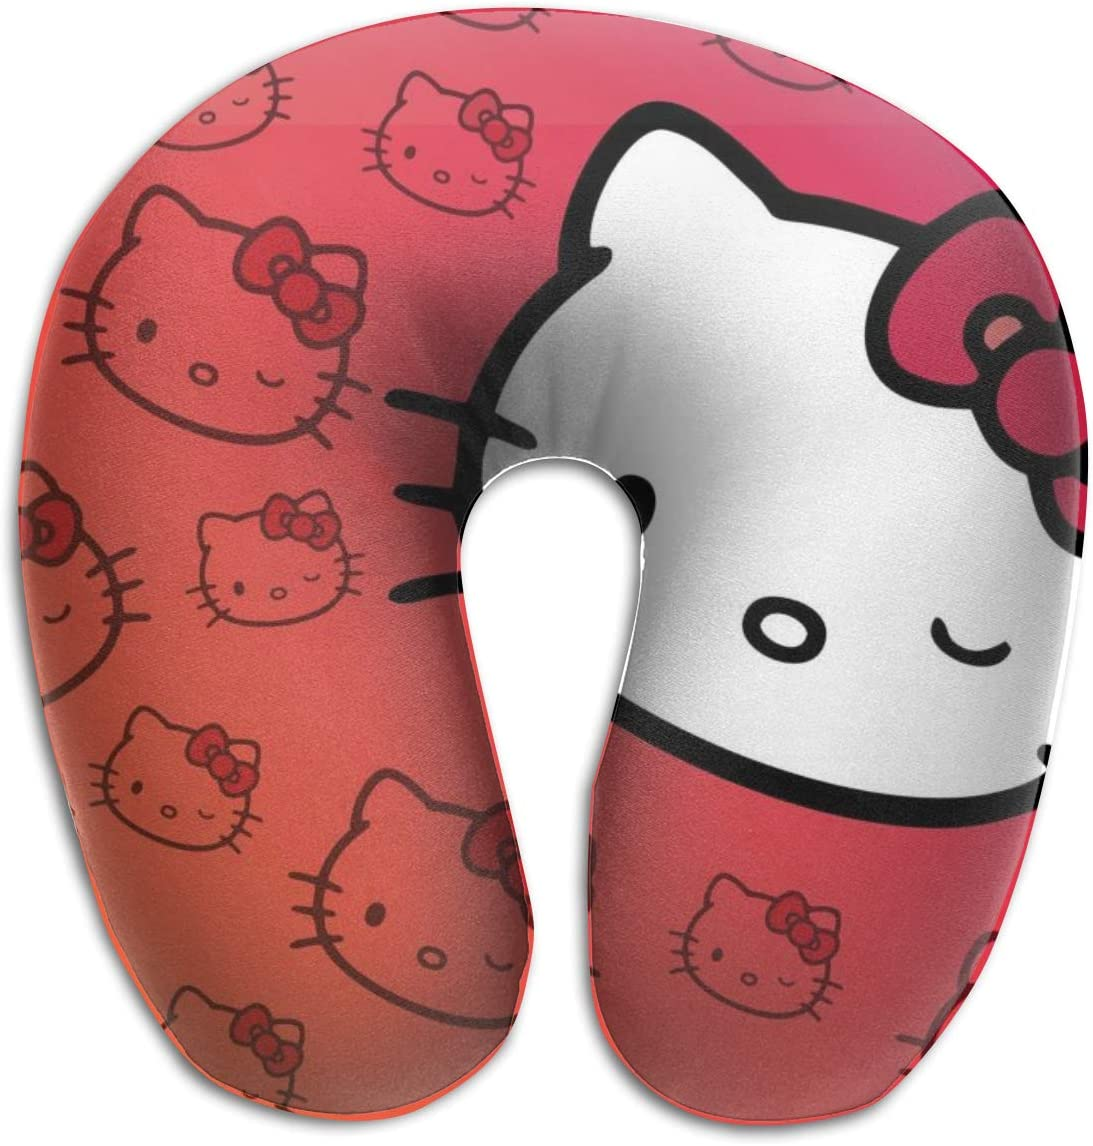 2in1 Hello Kitty Pillow Cushion /& Supersoft Plush Bedroom Blanket Throw Cover